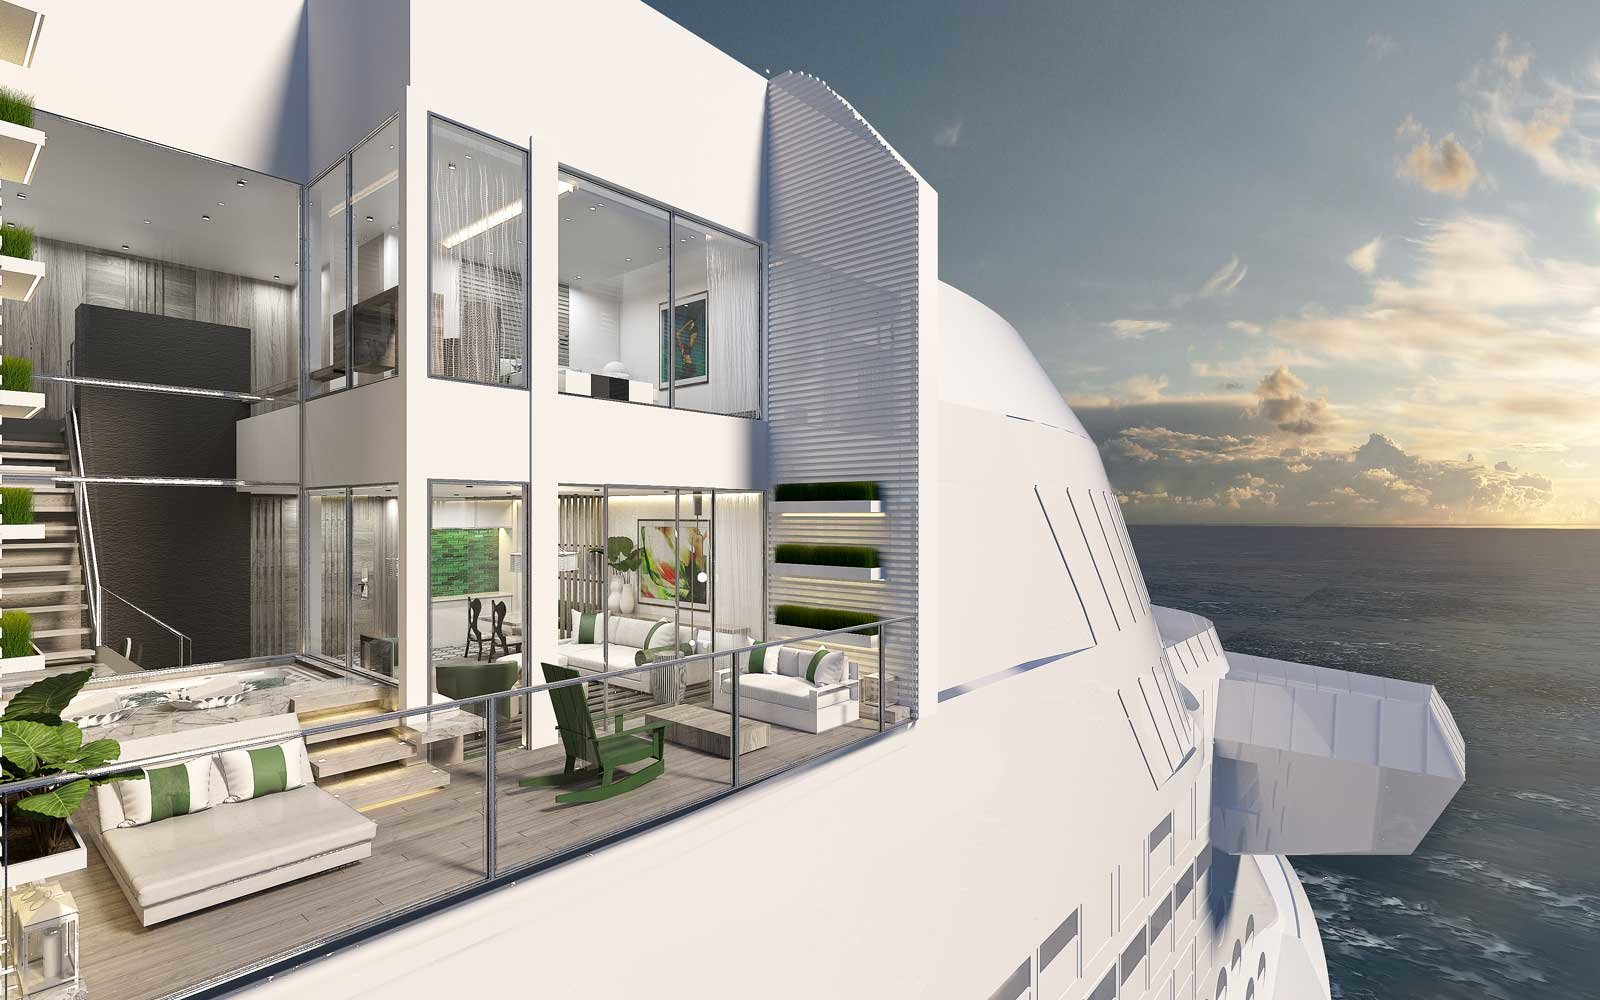 New Amenities on cruise ships include this two-story suite on the Celebrity Edge